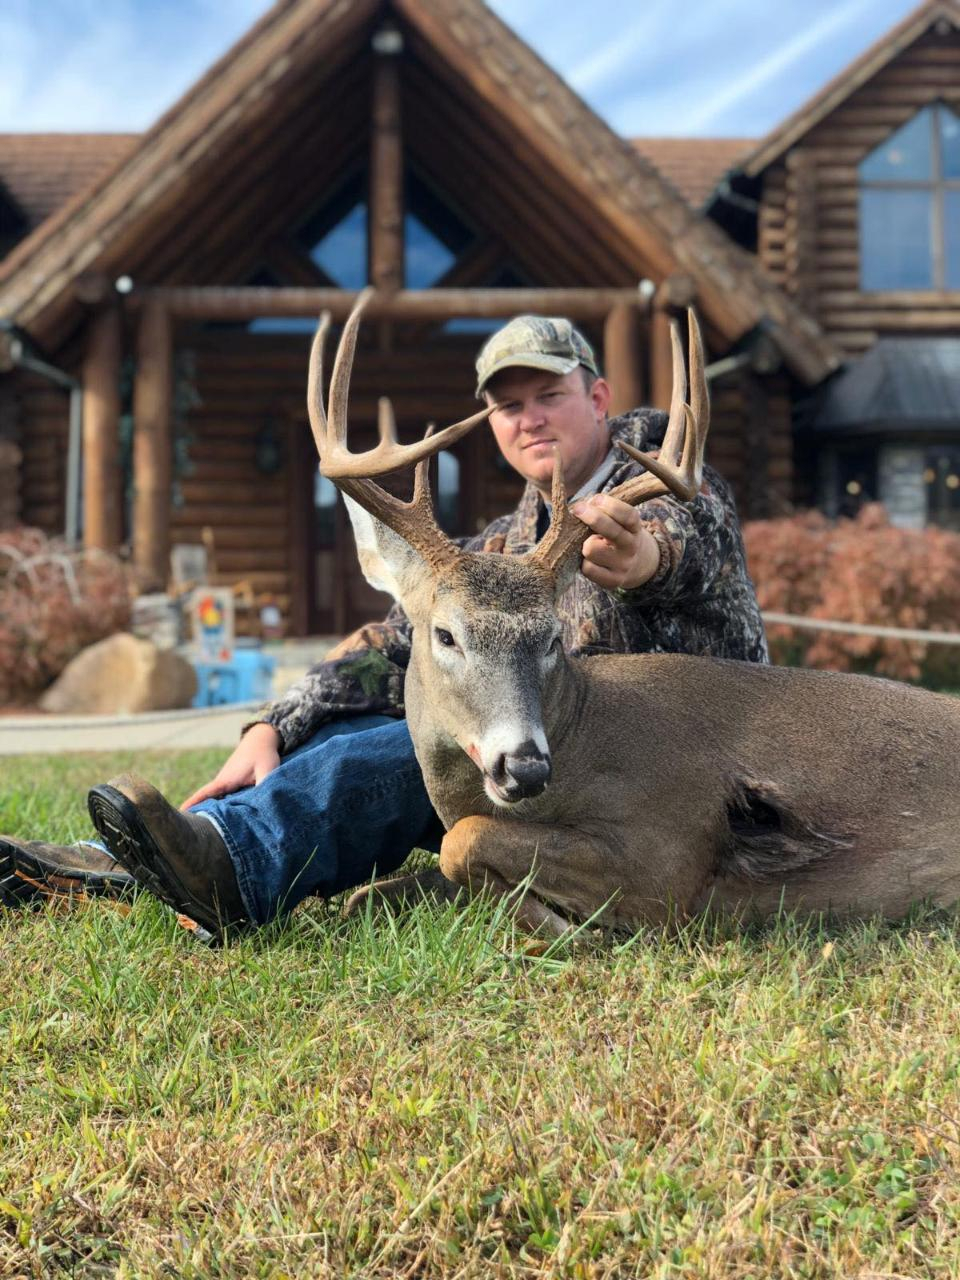 Central Camp Kentucky 5 Day 6 Night Rut Bow Hunt - Whitetail in Kentucky Rut 2021